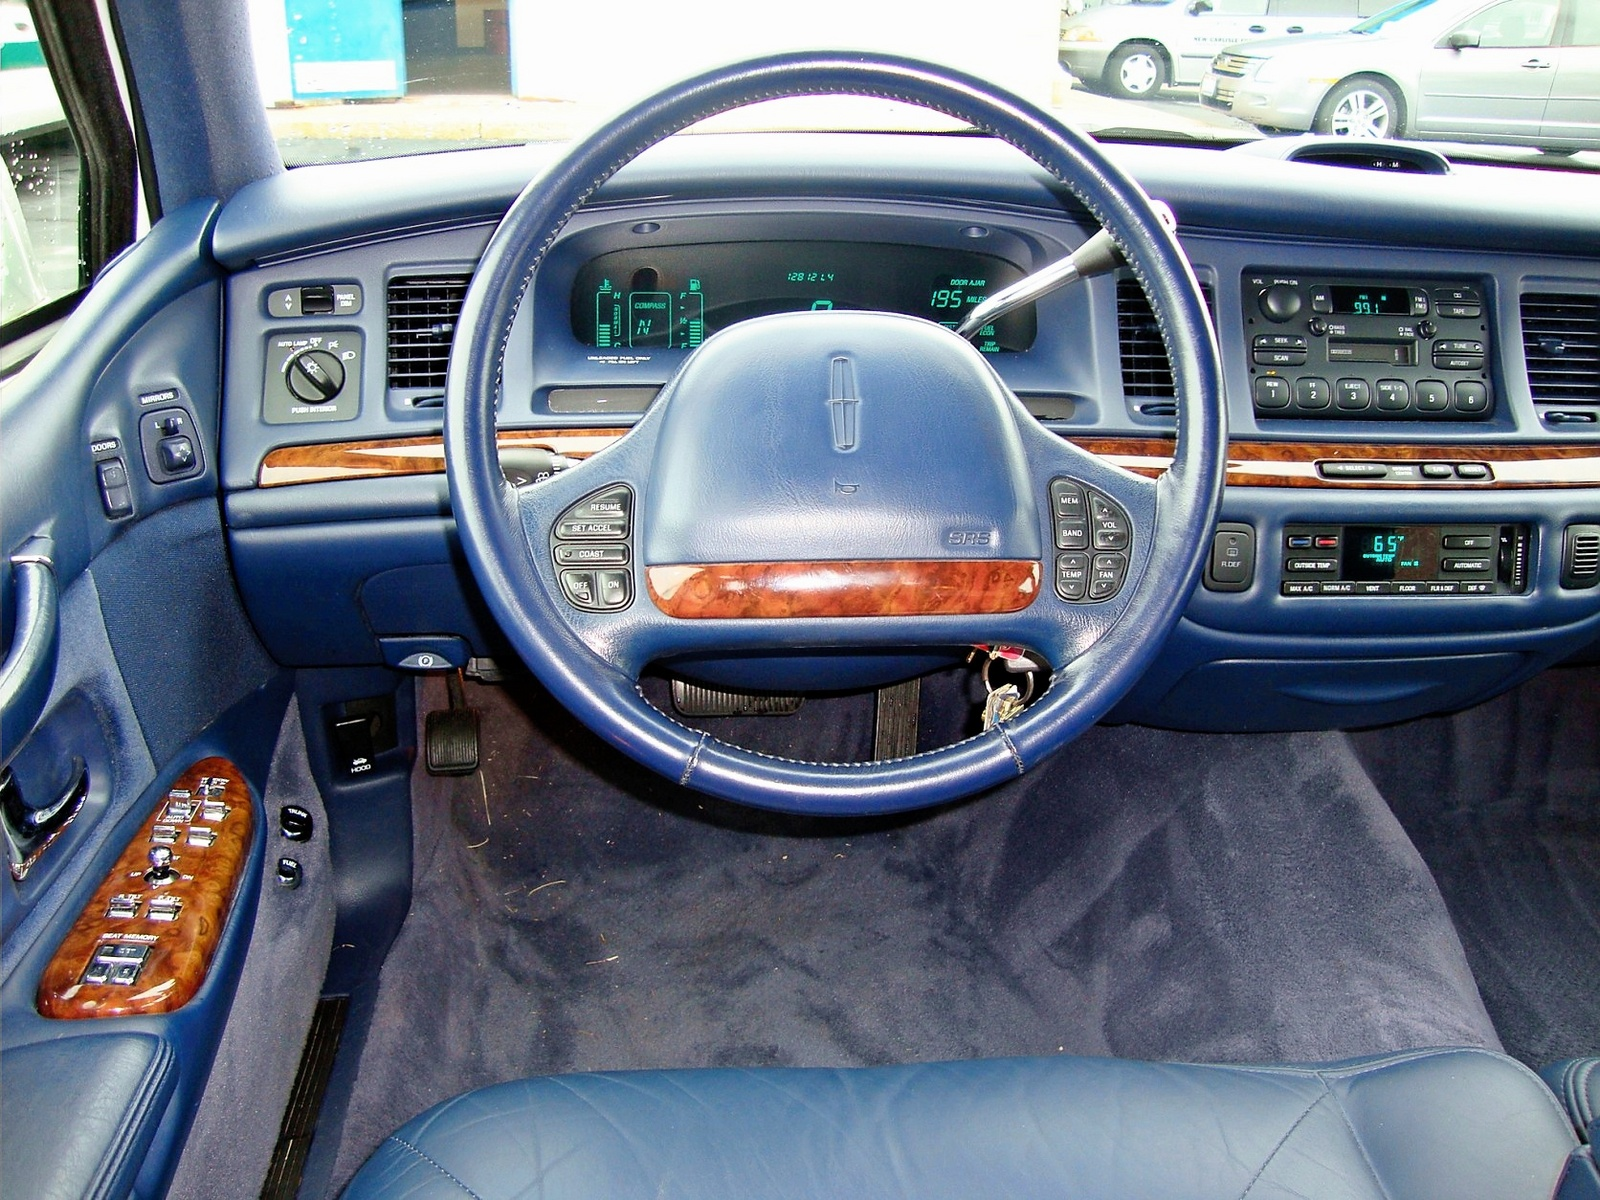 1995 lincoln town car interior pictures cargurus. Black Bedroom Furniture Sets. Home Design Ideas